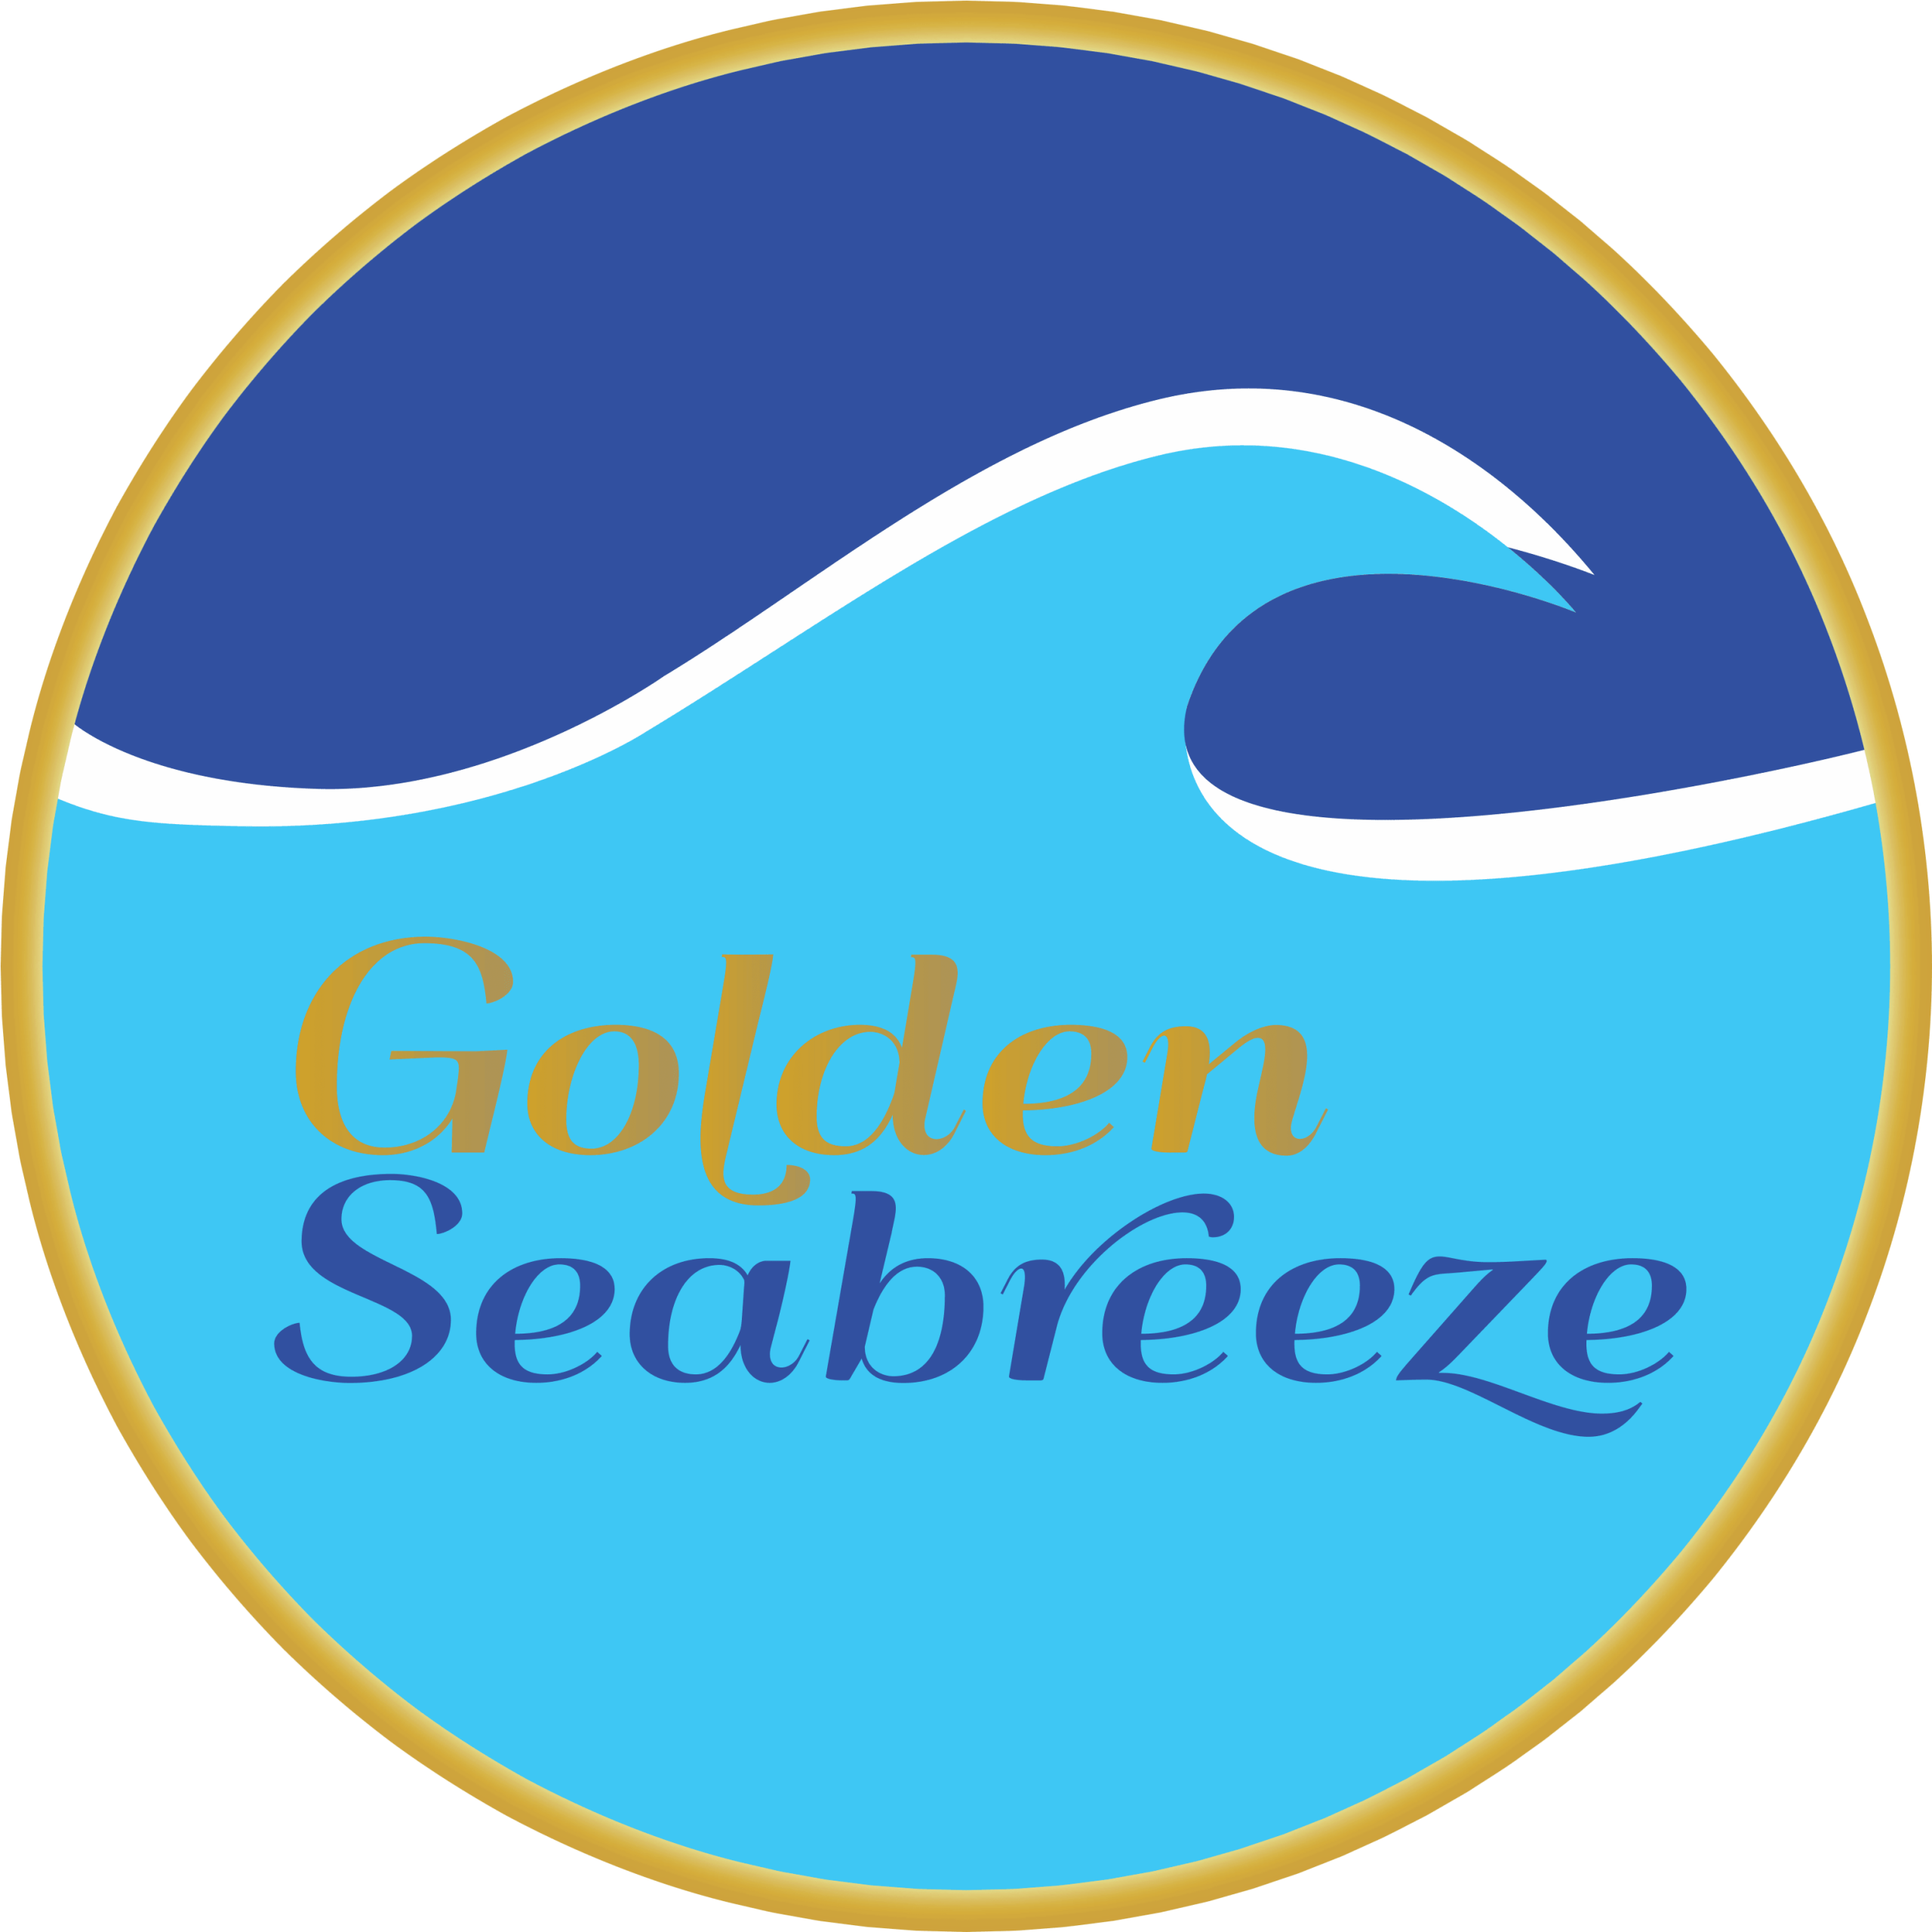 cropped-Golden-Seabreeze-min-1-min-scaled.png